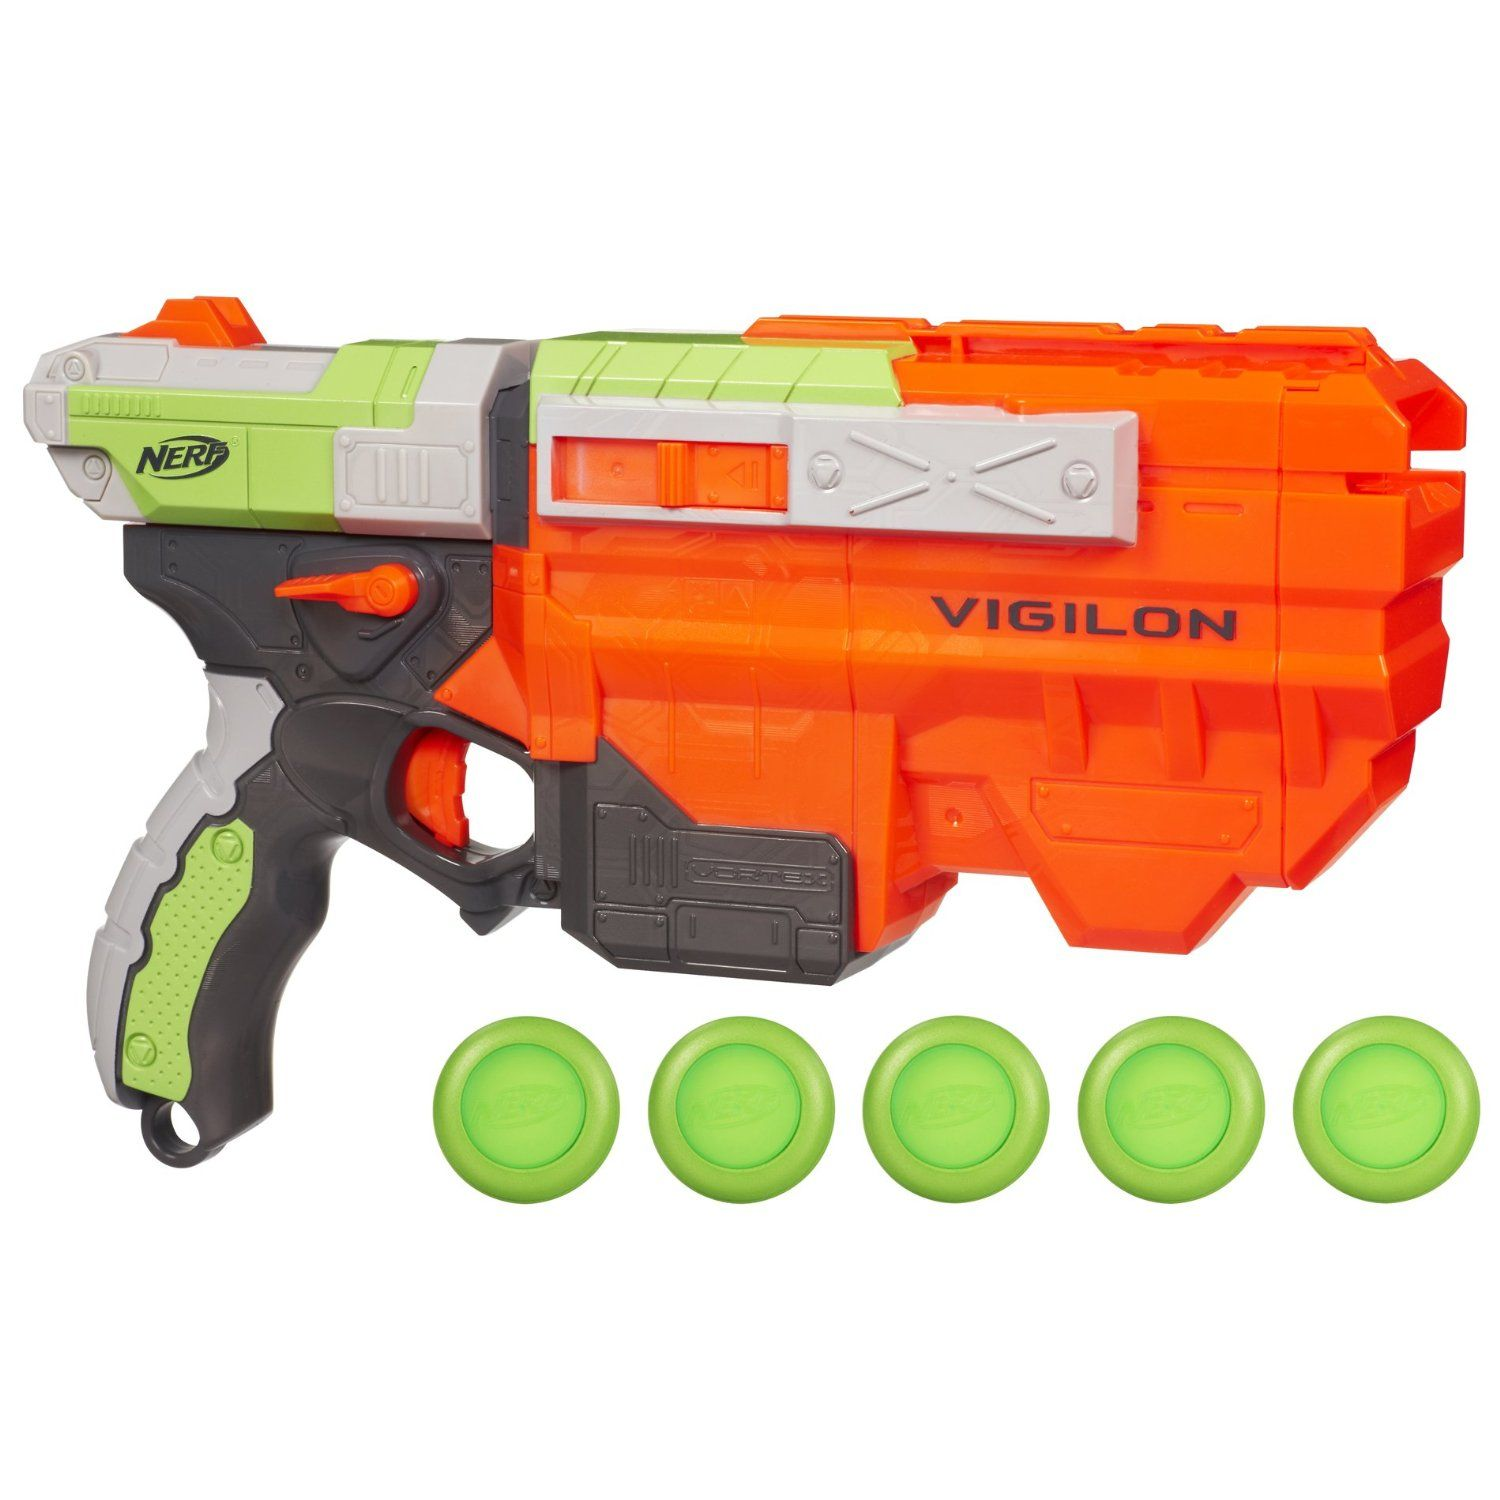 Black Friday 2014 Nerf Vortex Vigilon Blaster from Nerf Cyber Monday. Black  Friday specials on the season most-wanted Christmas gifts.